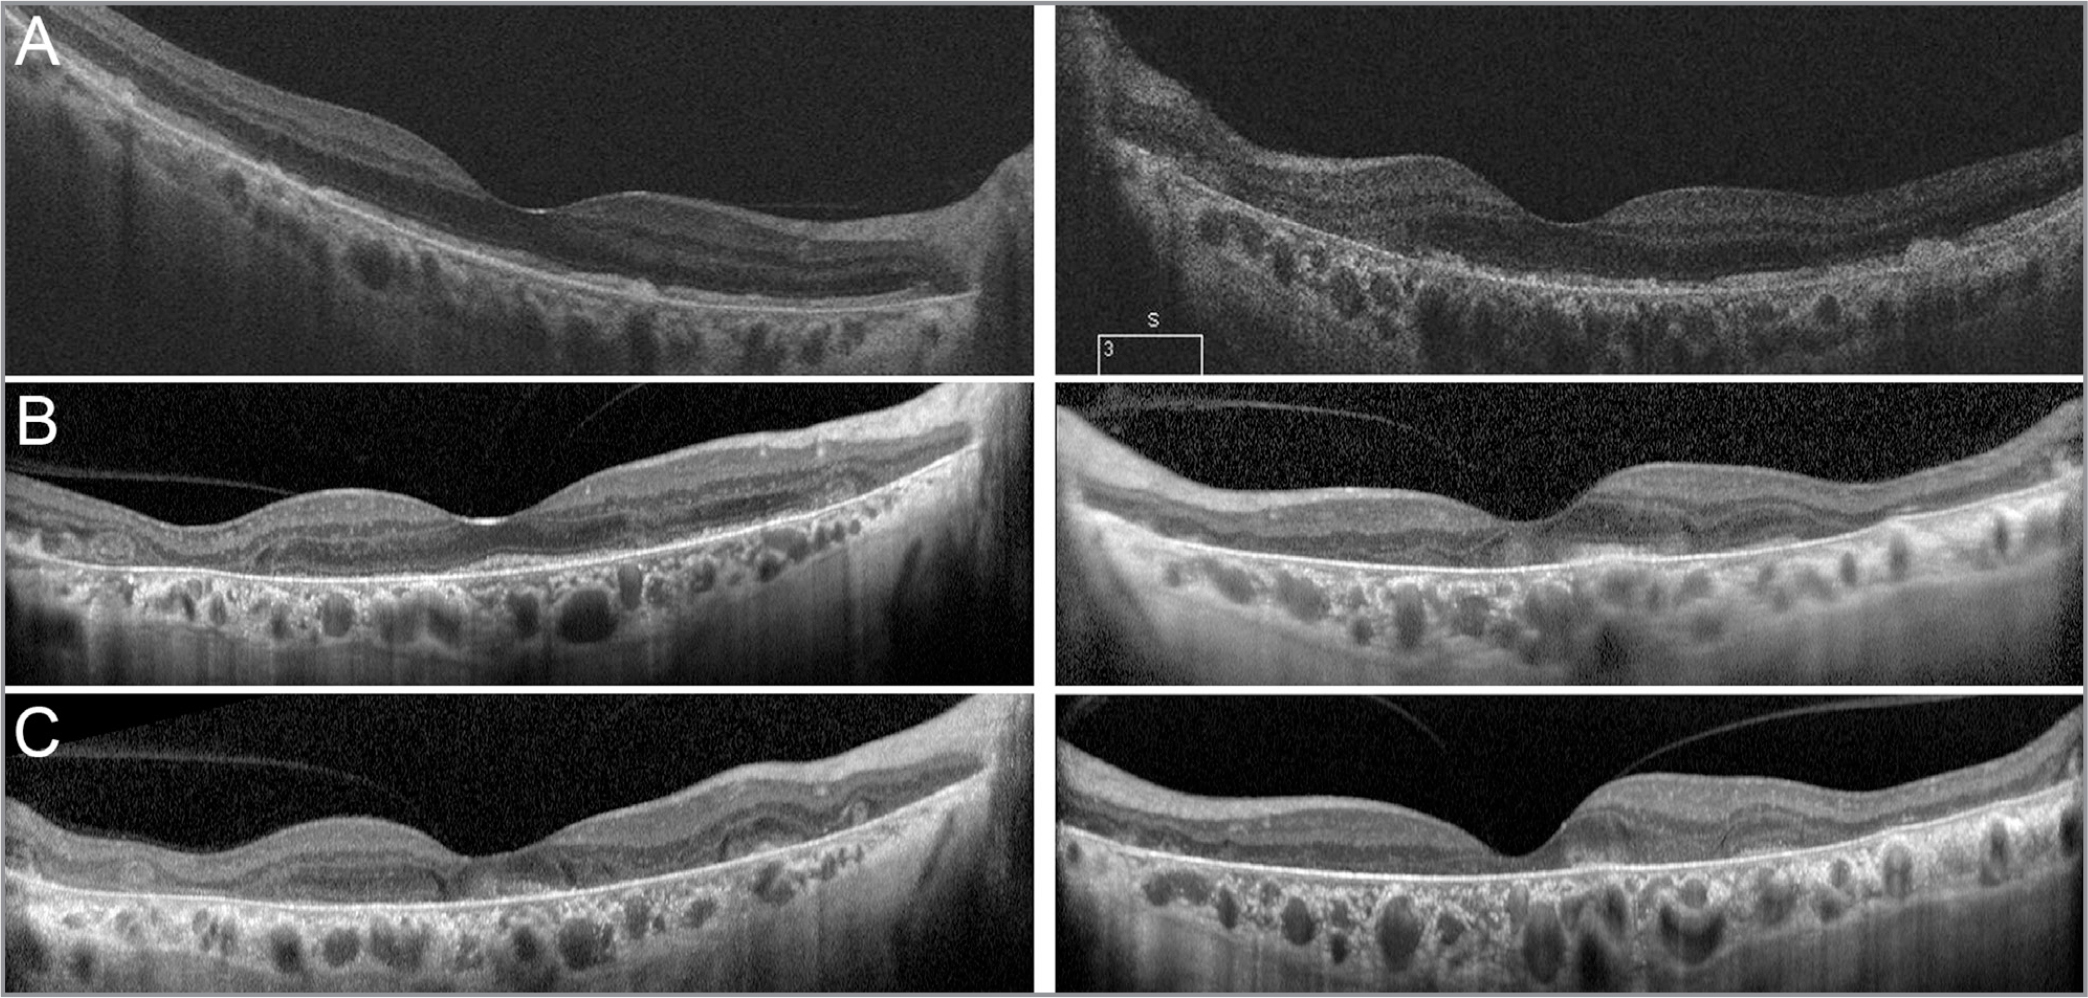 Serial optical coherence tomography (OCT) imaging. OCT at the initial visit (A, age 62) demonstrated bilateral hyperreflective nodular deposits at the level of the retinal pigment epithelium (RPE) in addition to disruption and loss of RPE and photoreceptors that was most pronounced in the left eye. Subsequent visits approximately 4 and 6 years after stopping PPS (B, age 67; C, age 69) showed bilateral progressive fovea-involving atrophy of the RPE and photoreceptors. Outer retinal tubulations were present in the right eye at the second two visits.